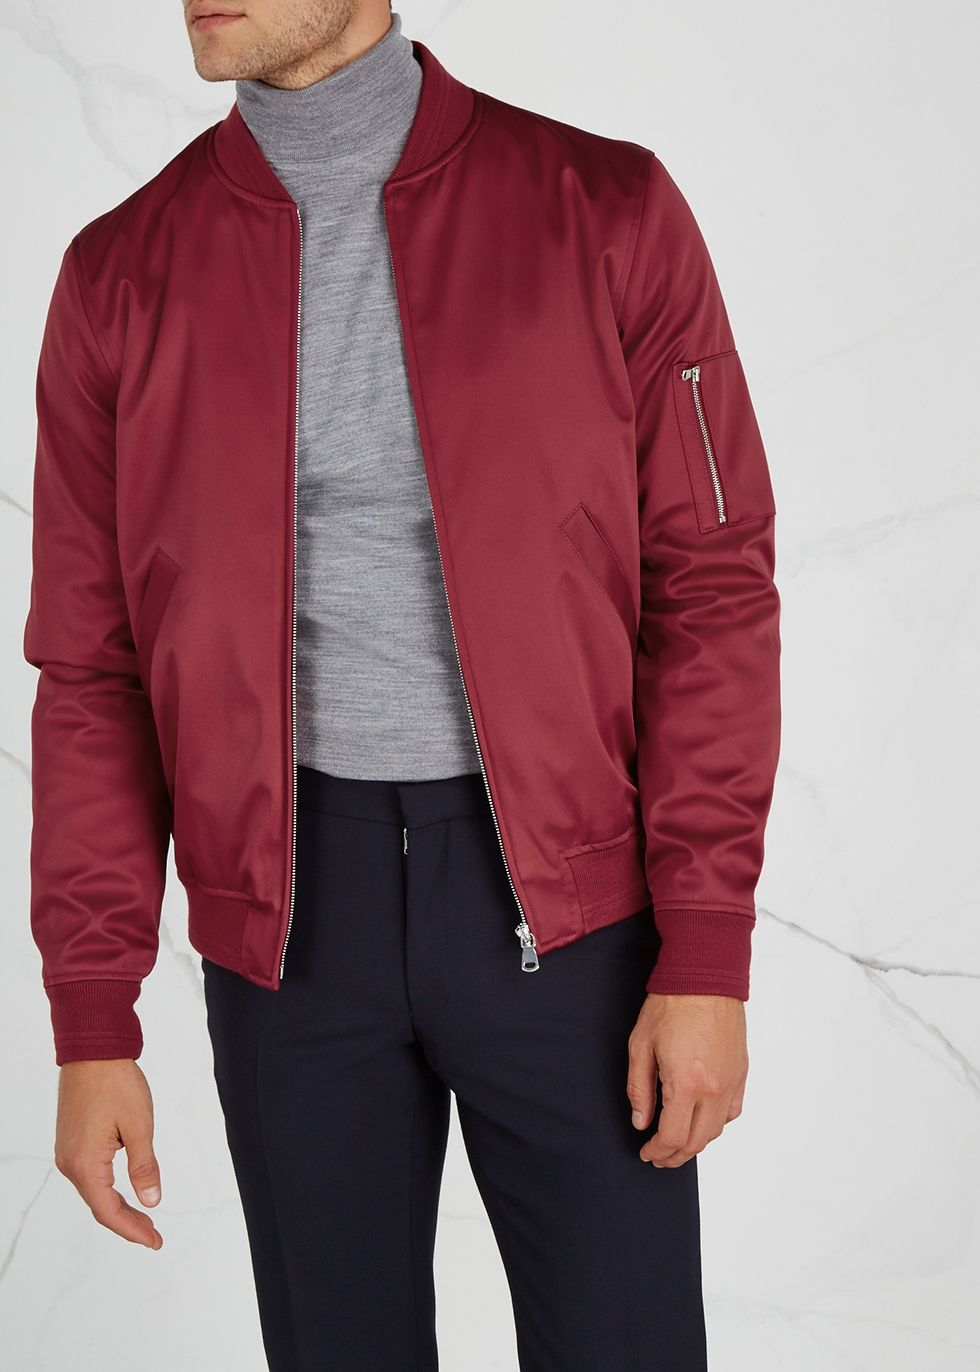 New In A P C Tough Red Satin Bomber Jacket Bomber Jacket Fashion Satin Bomber Jacket [ 1372 x 980 Pixel ]